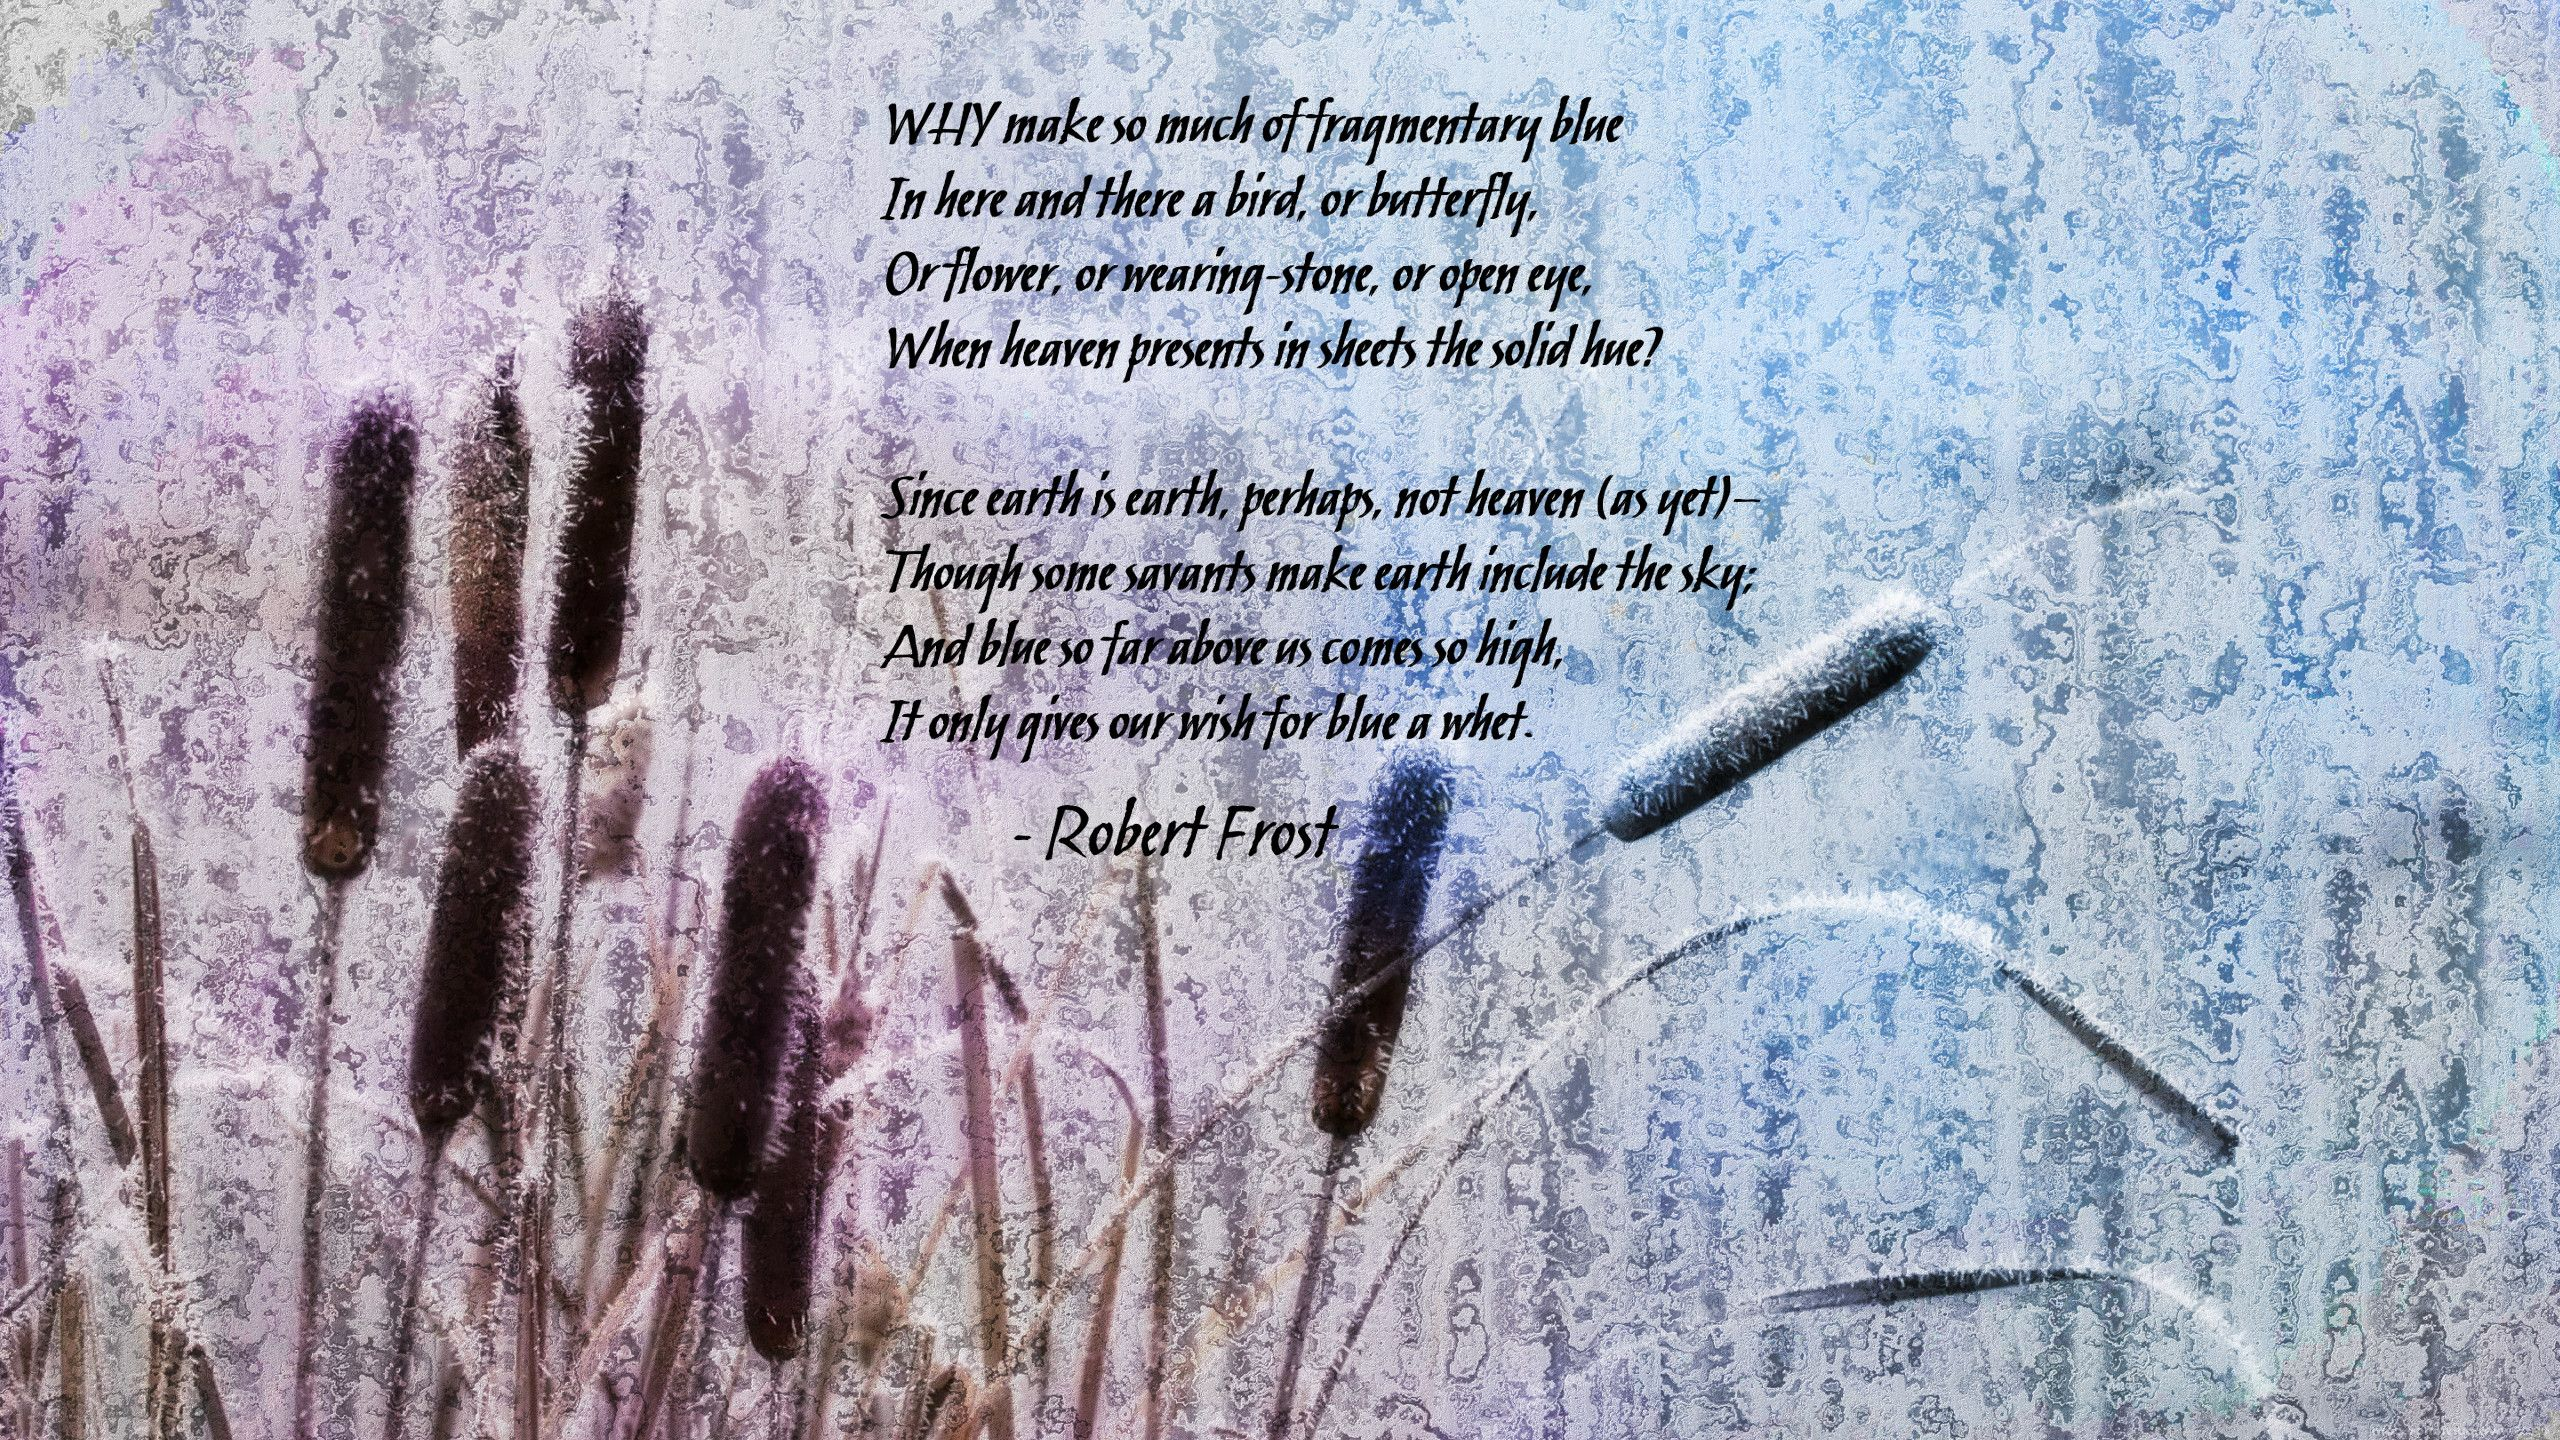 essays on frost poetry Essay robert frost robert frost, an americian poet of the late 19th century, used nature in many of his writings this paper will discuss the thought process of frost during his writings.